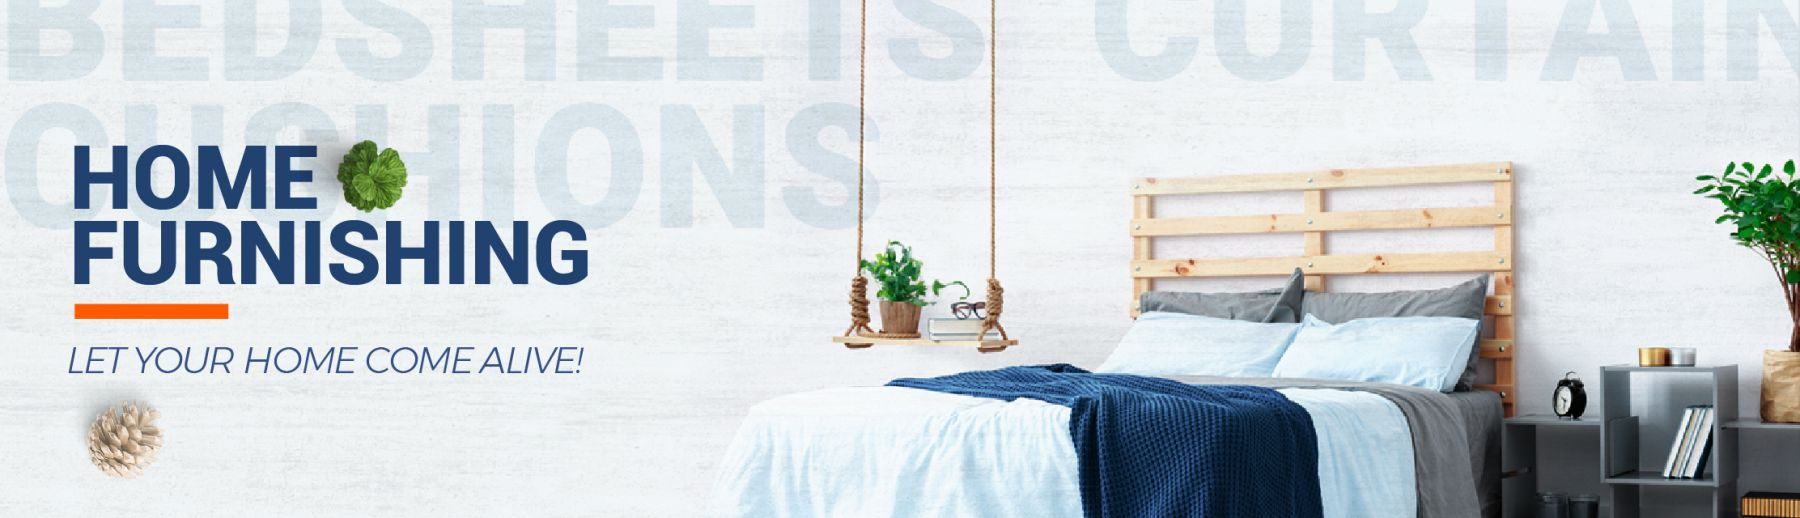 Great Indian Festival: Upto 80% Off on Home Furnishing + Extra 10% Off on SBI Bank Debit & Credit Cards (29th Sept - 4th Oct)